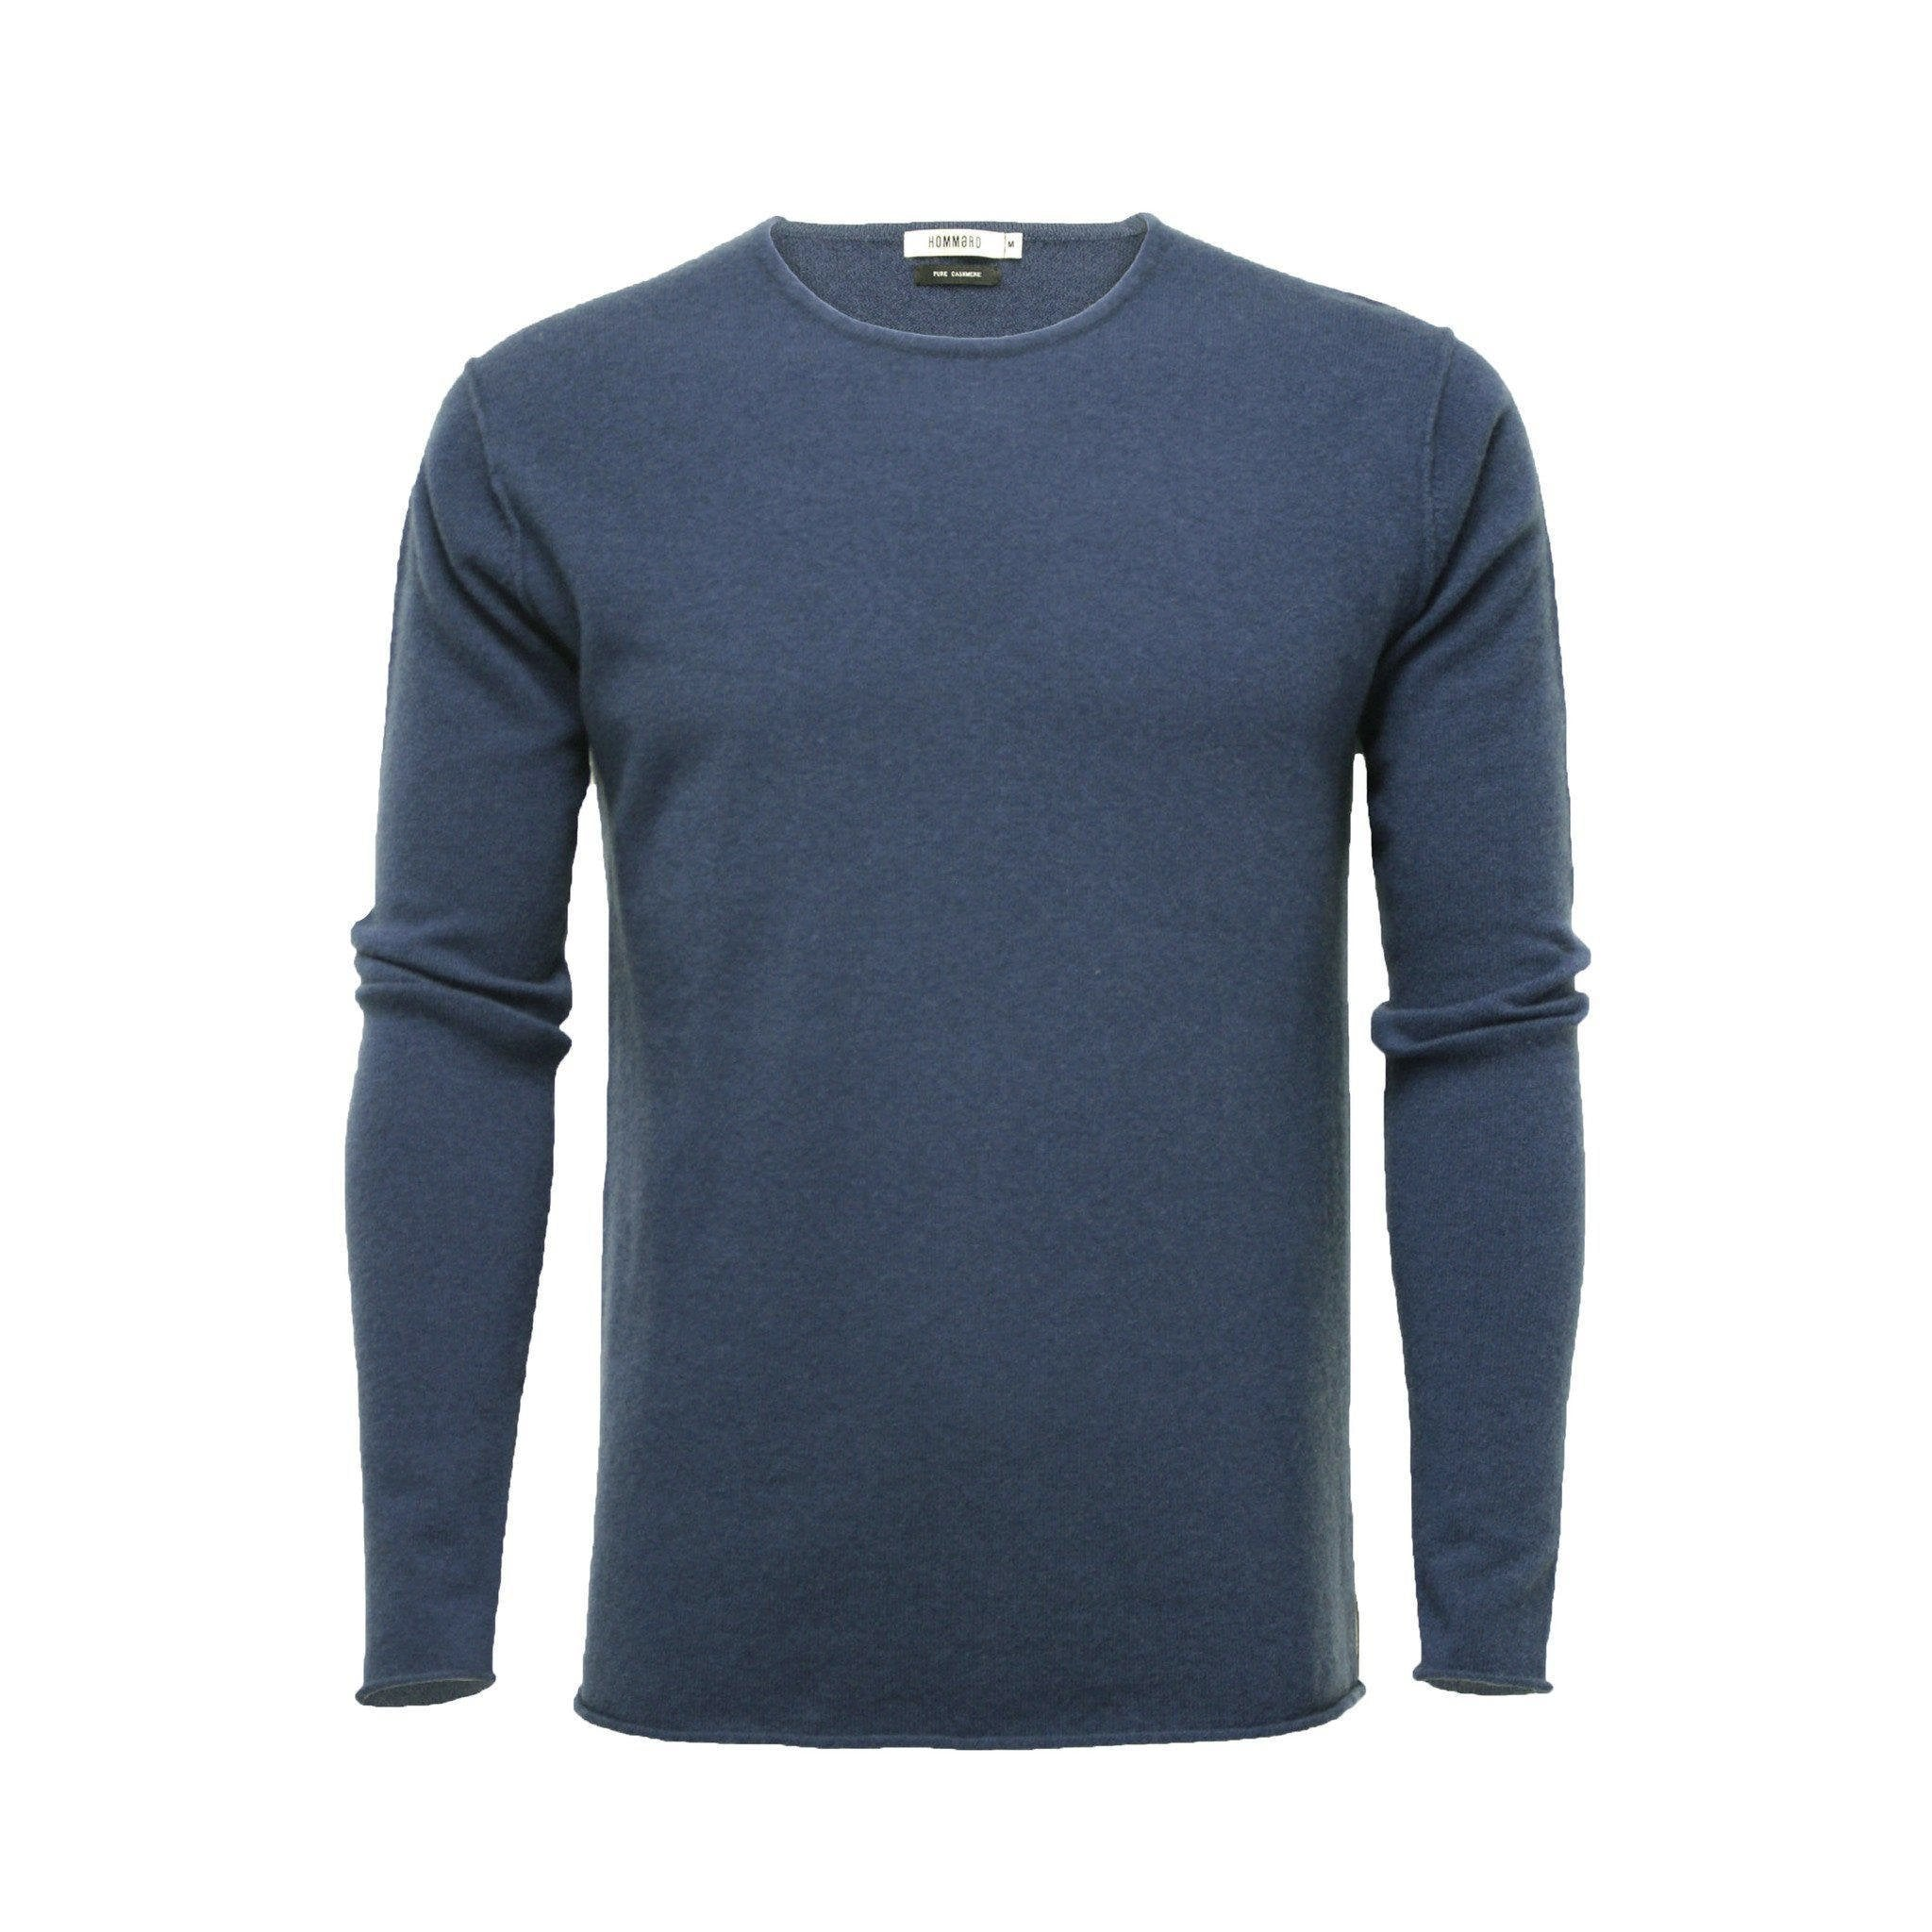 Men´s Cashmere Crew Neck Sweater Ripley Jeans Blue